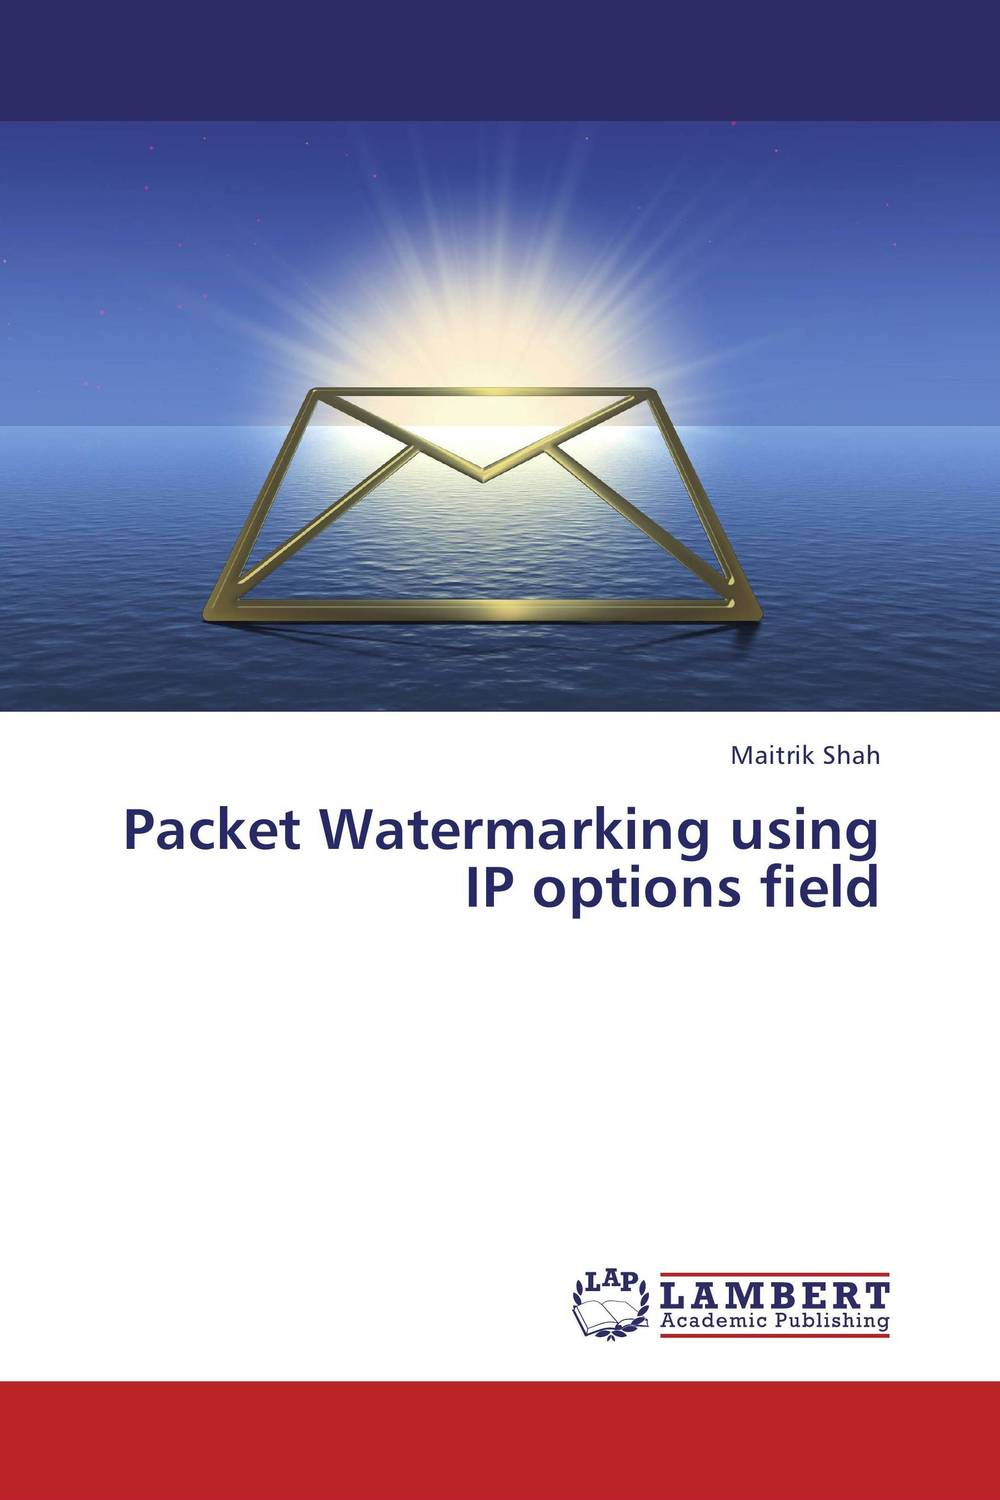 Packet Watermarking using IP options field отвертка крестовая neo pн2 x 100 мм до 1000 в